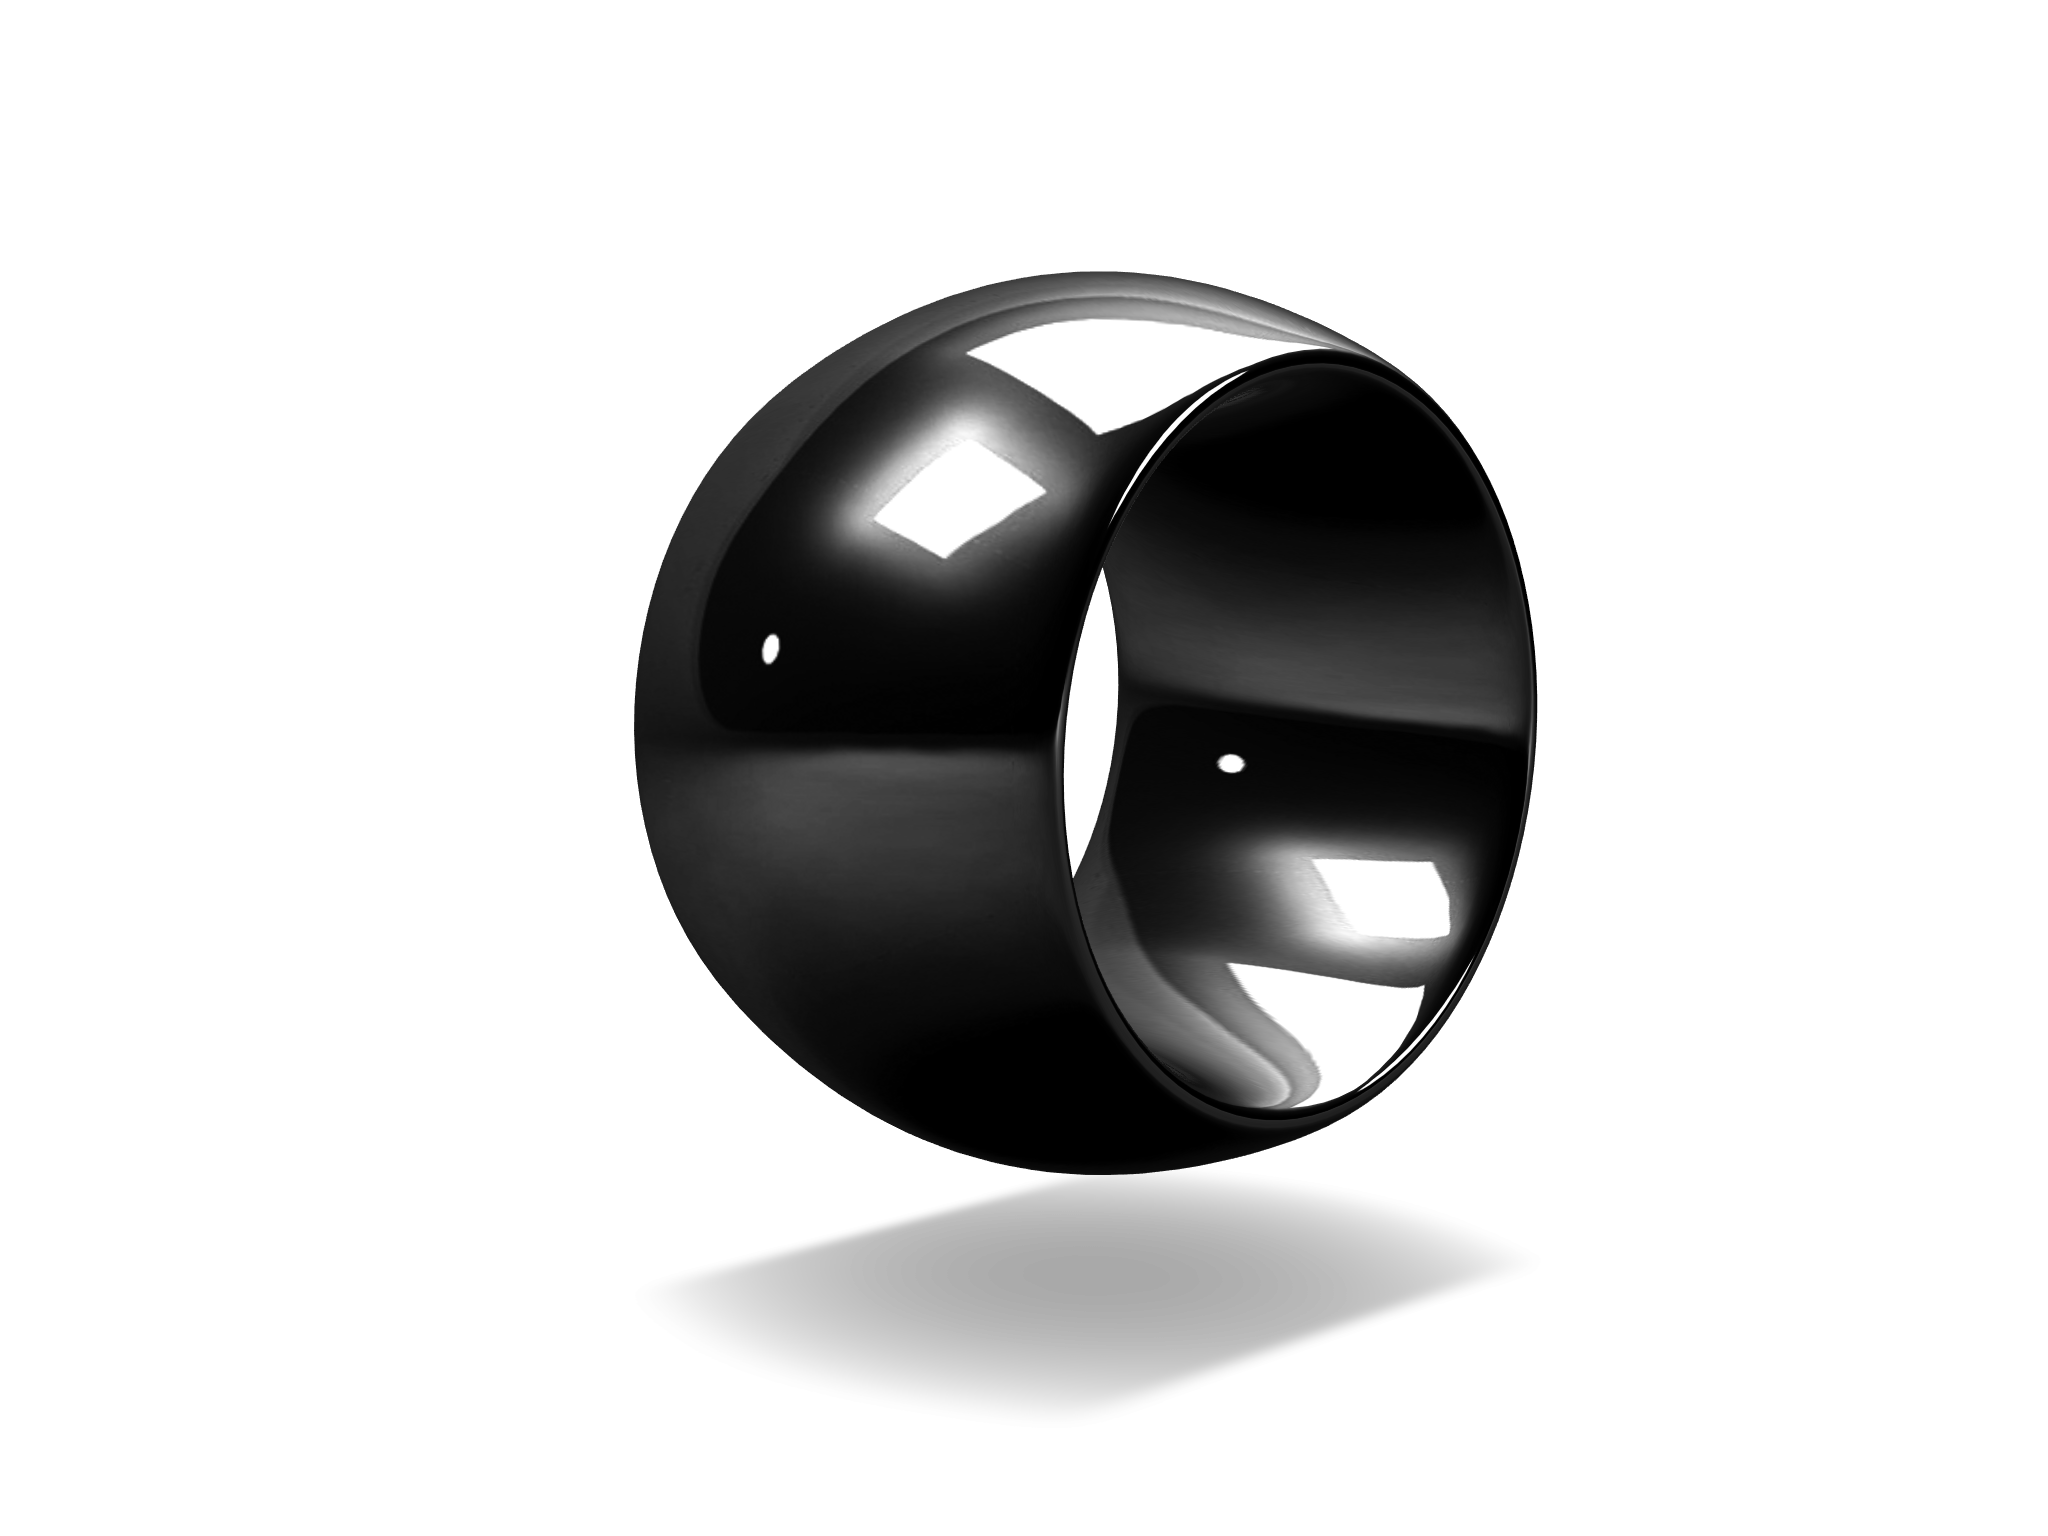 Bold Ring Black - 3D design by Adn Cetin on Dec 18, 2017